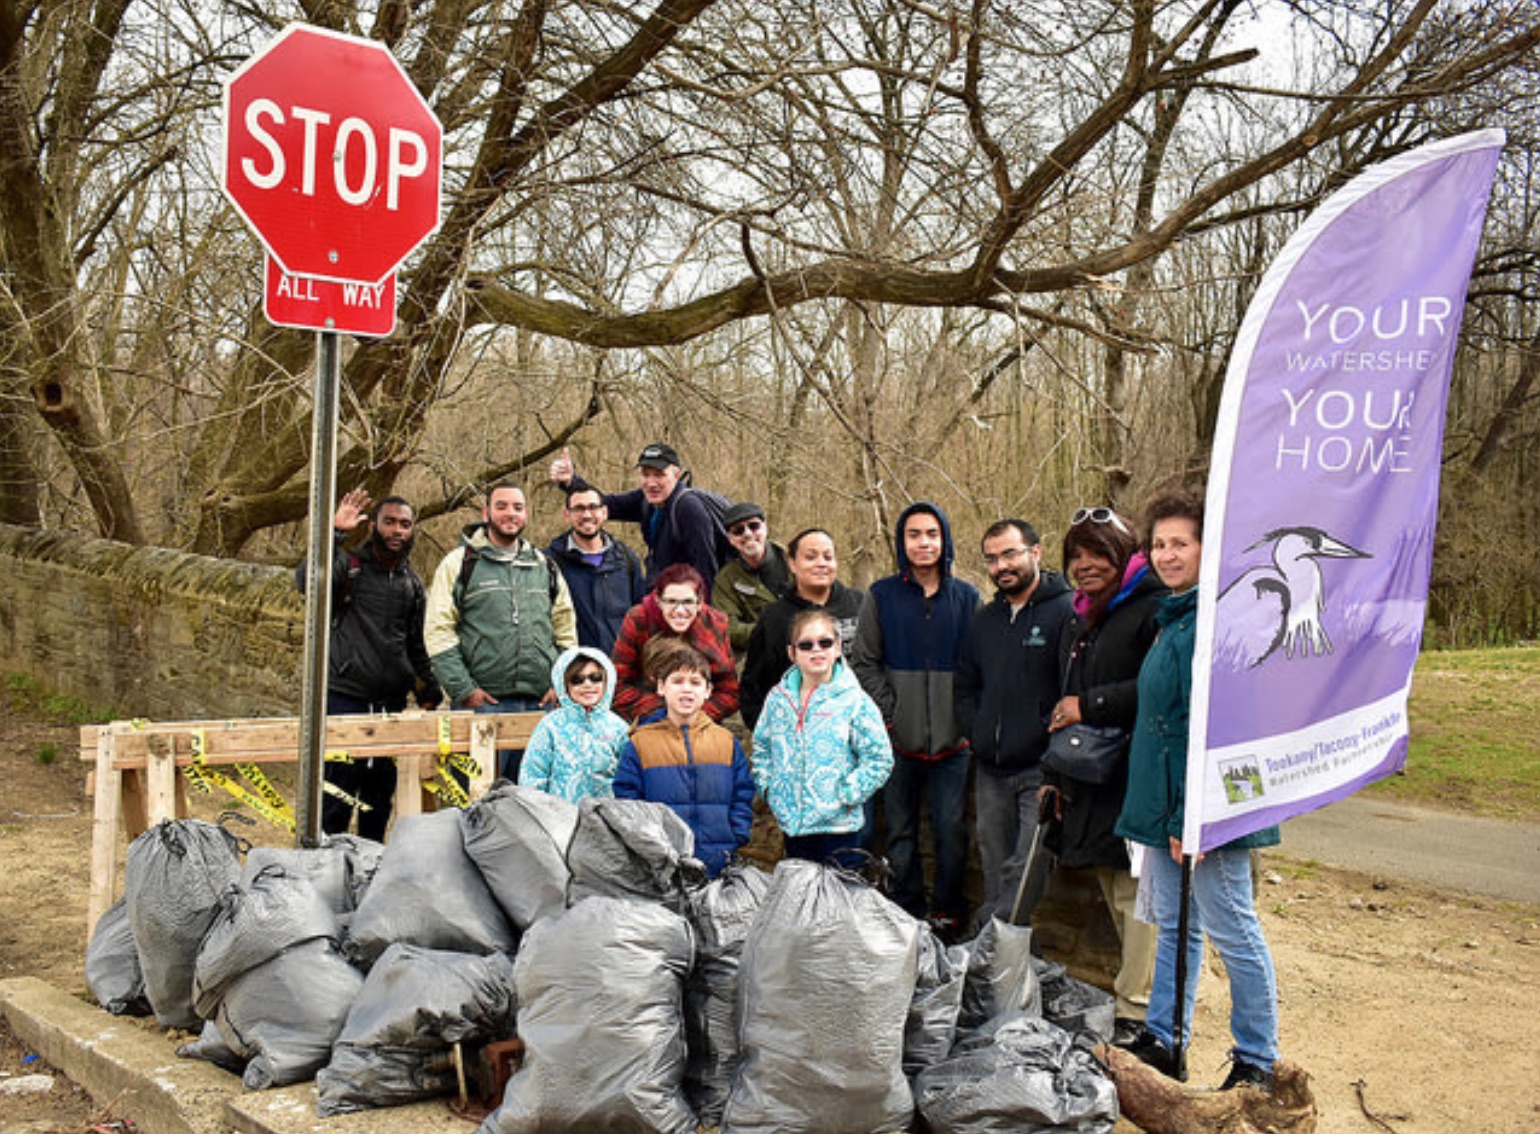 Community Service Ideas 2019 PA Environment Digest Blog: Need Community Service Ideas? Attend